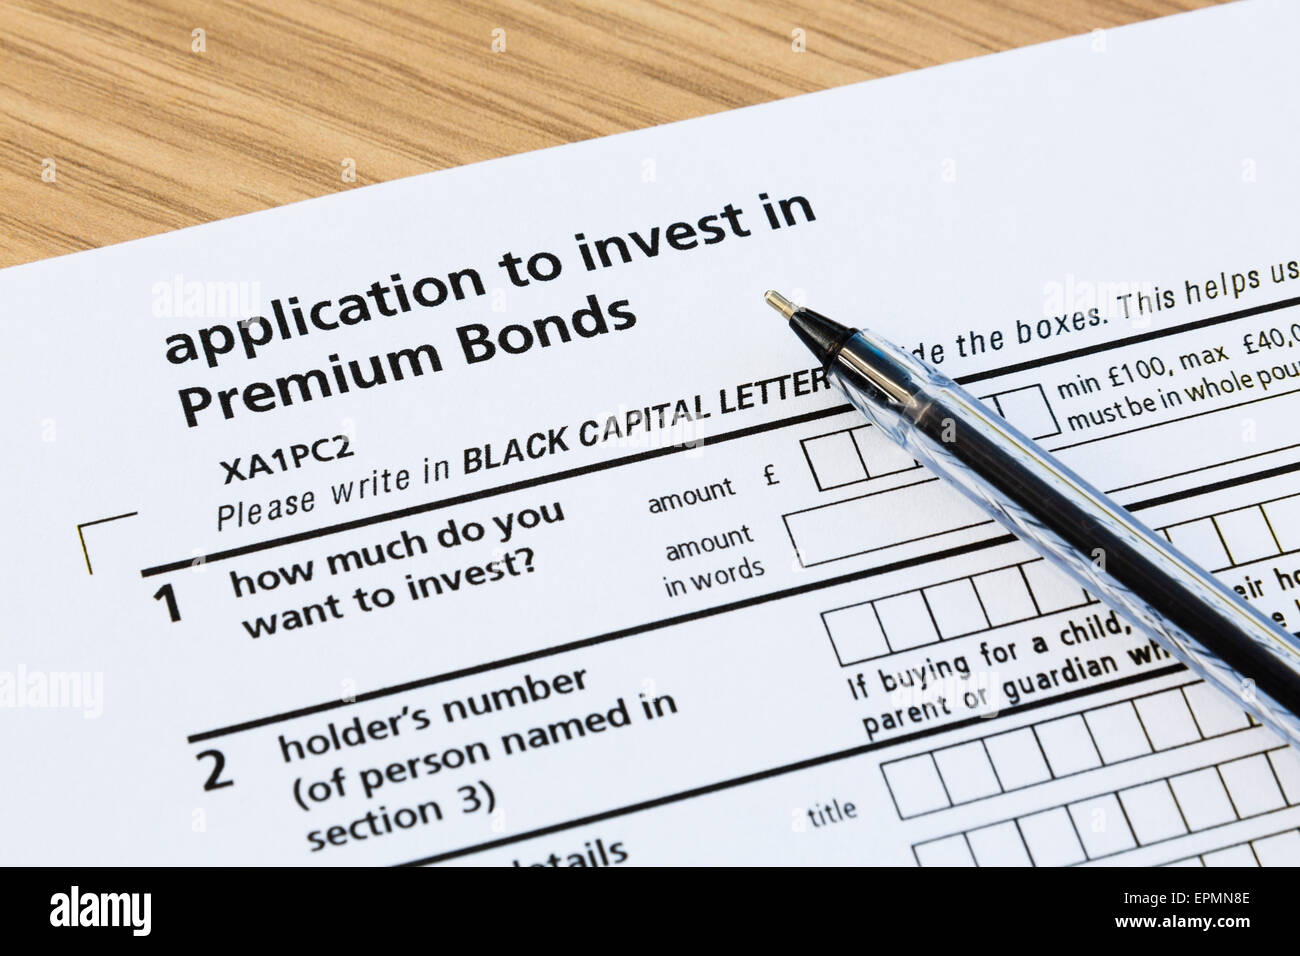 Application form to invest in Premium Bonds and a black ballpoint pen for completing the investment paperwork.  - Stock Image